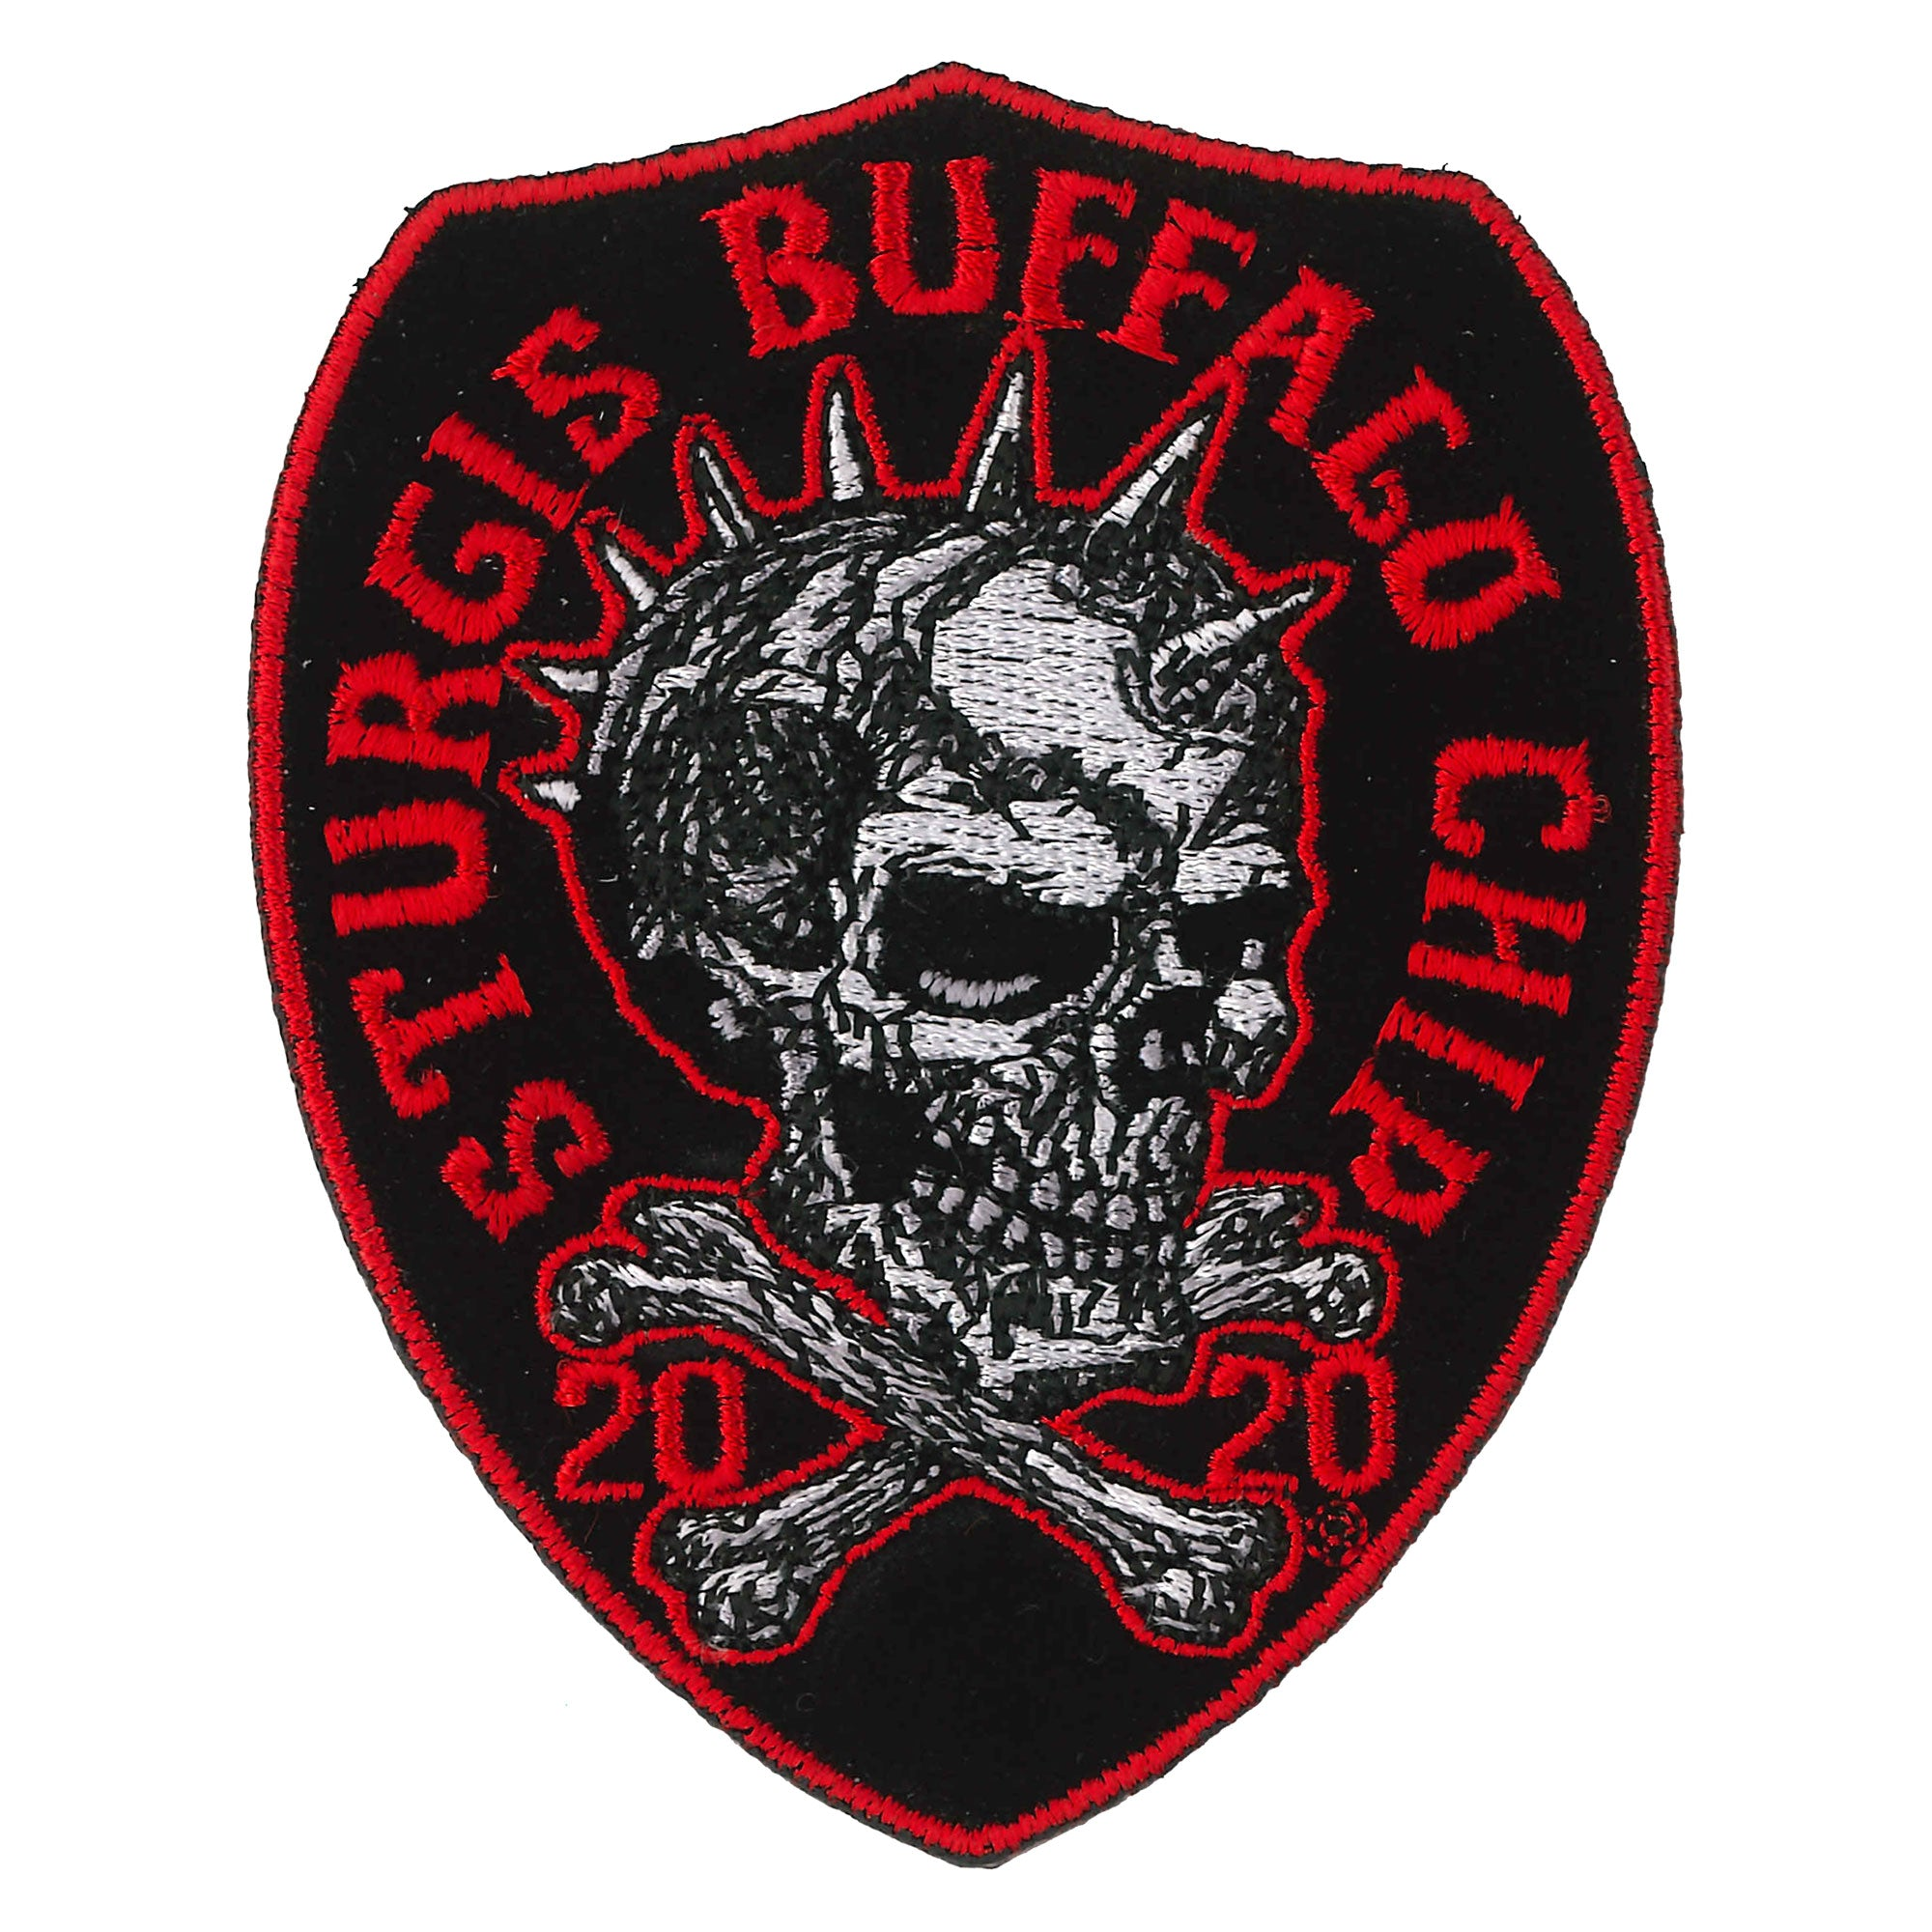 Chip 20 Spike Skull Patch